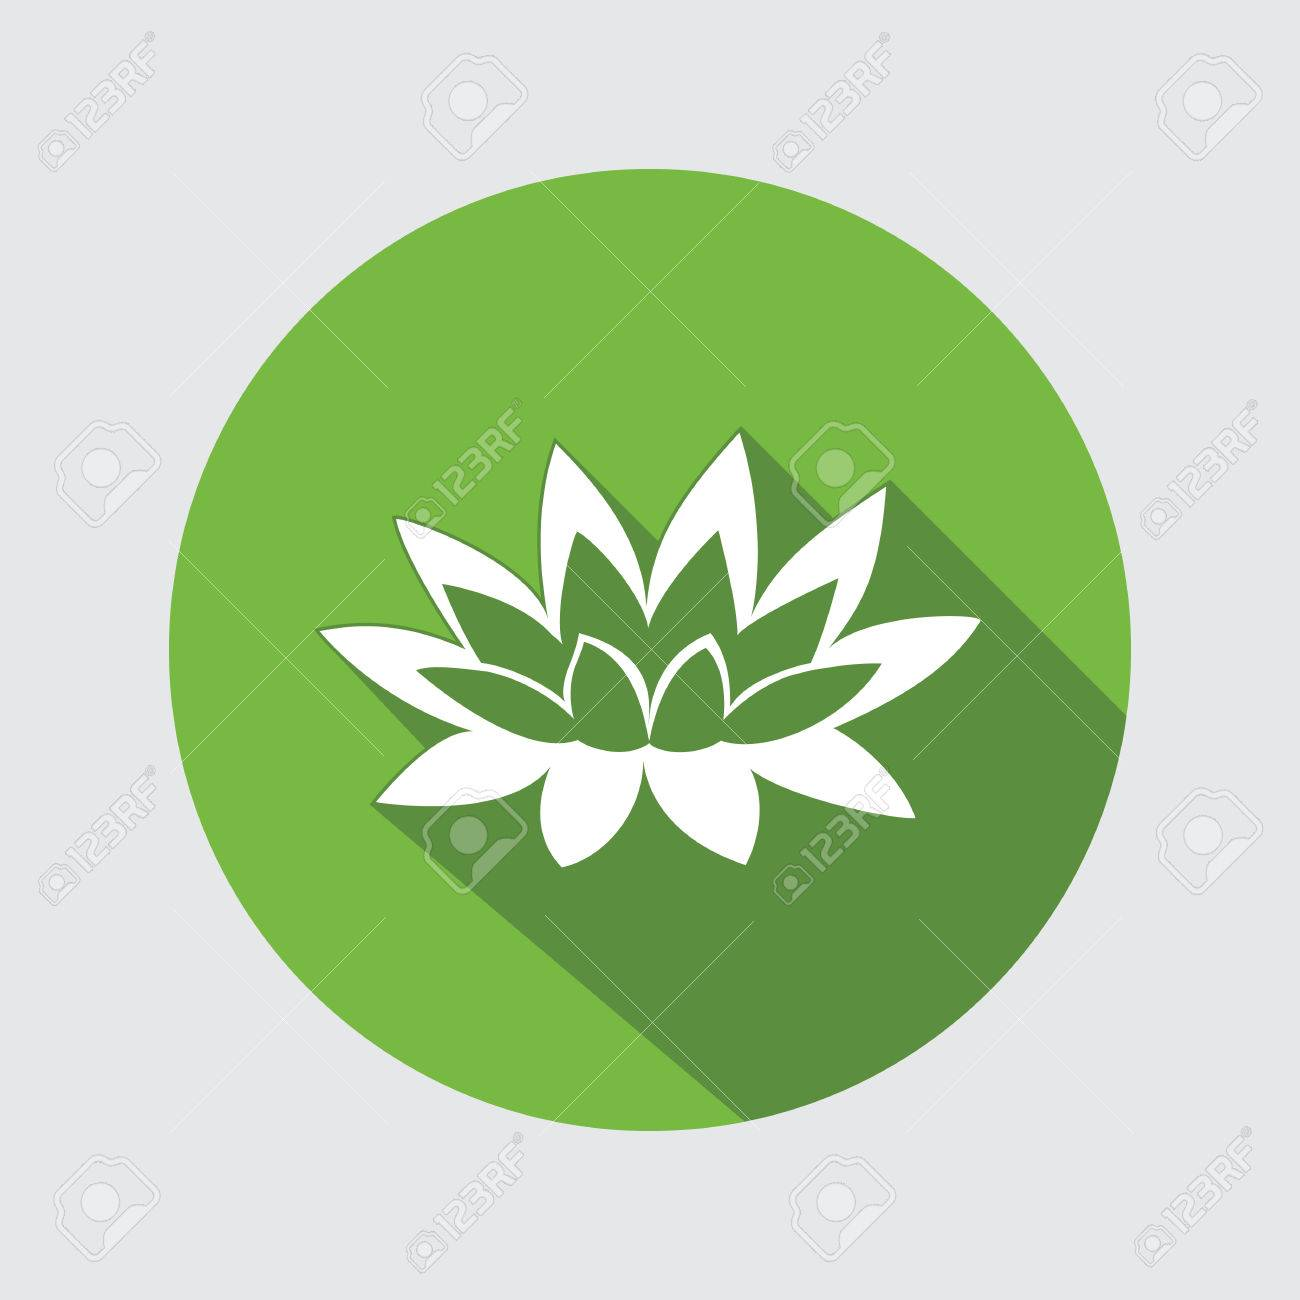 Lily flower icon waterlily water lilies floral symbol round lily flower icon waterlily water lilies floral symbol round circle flat sign izmirmasajfo